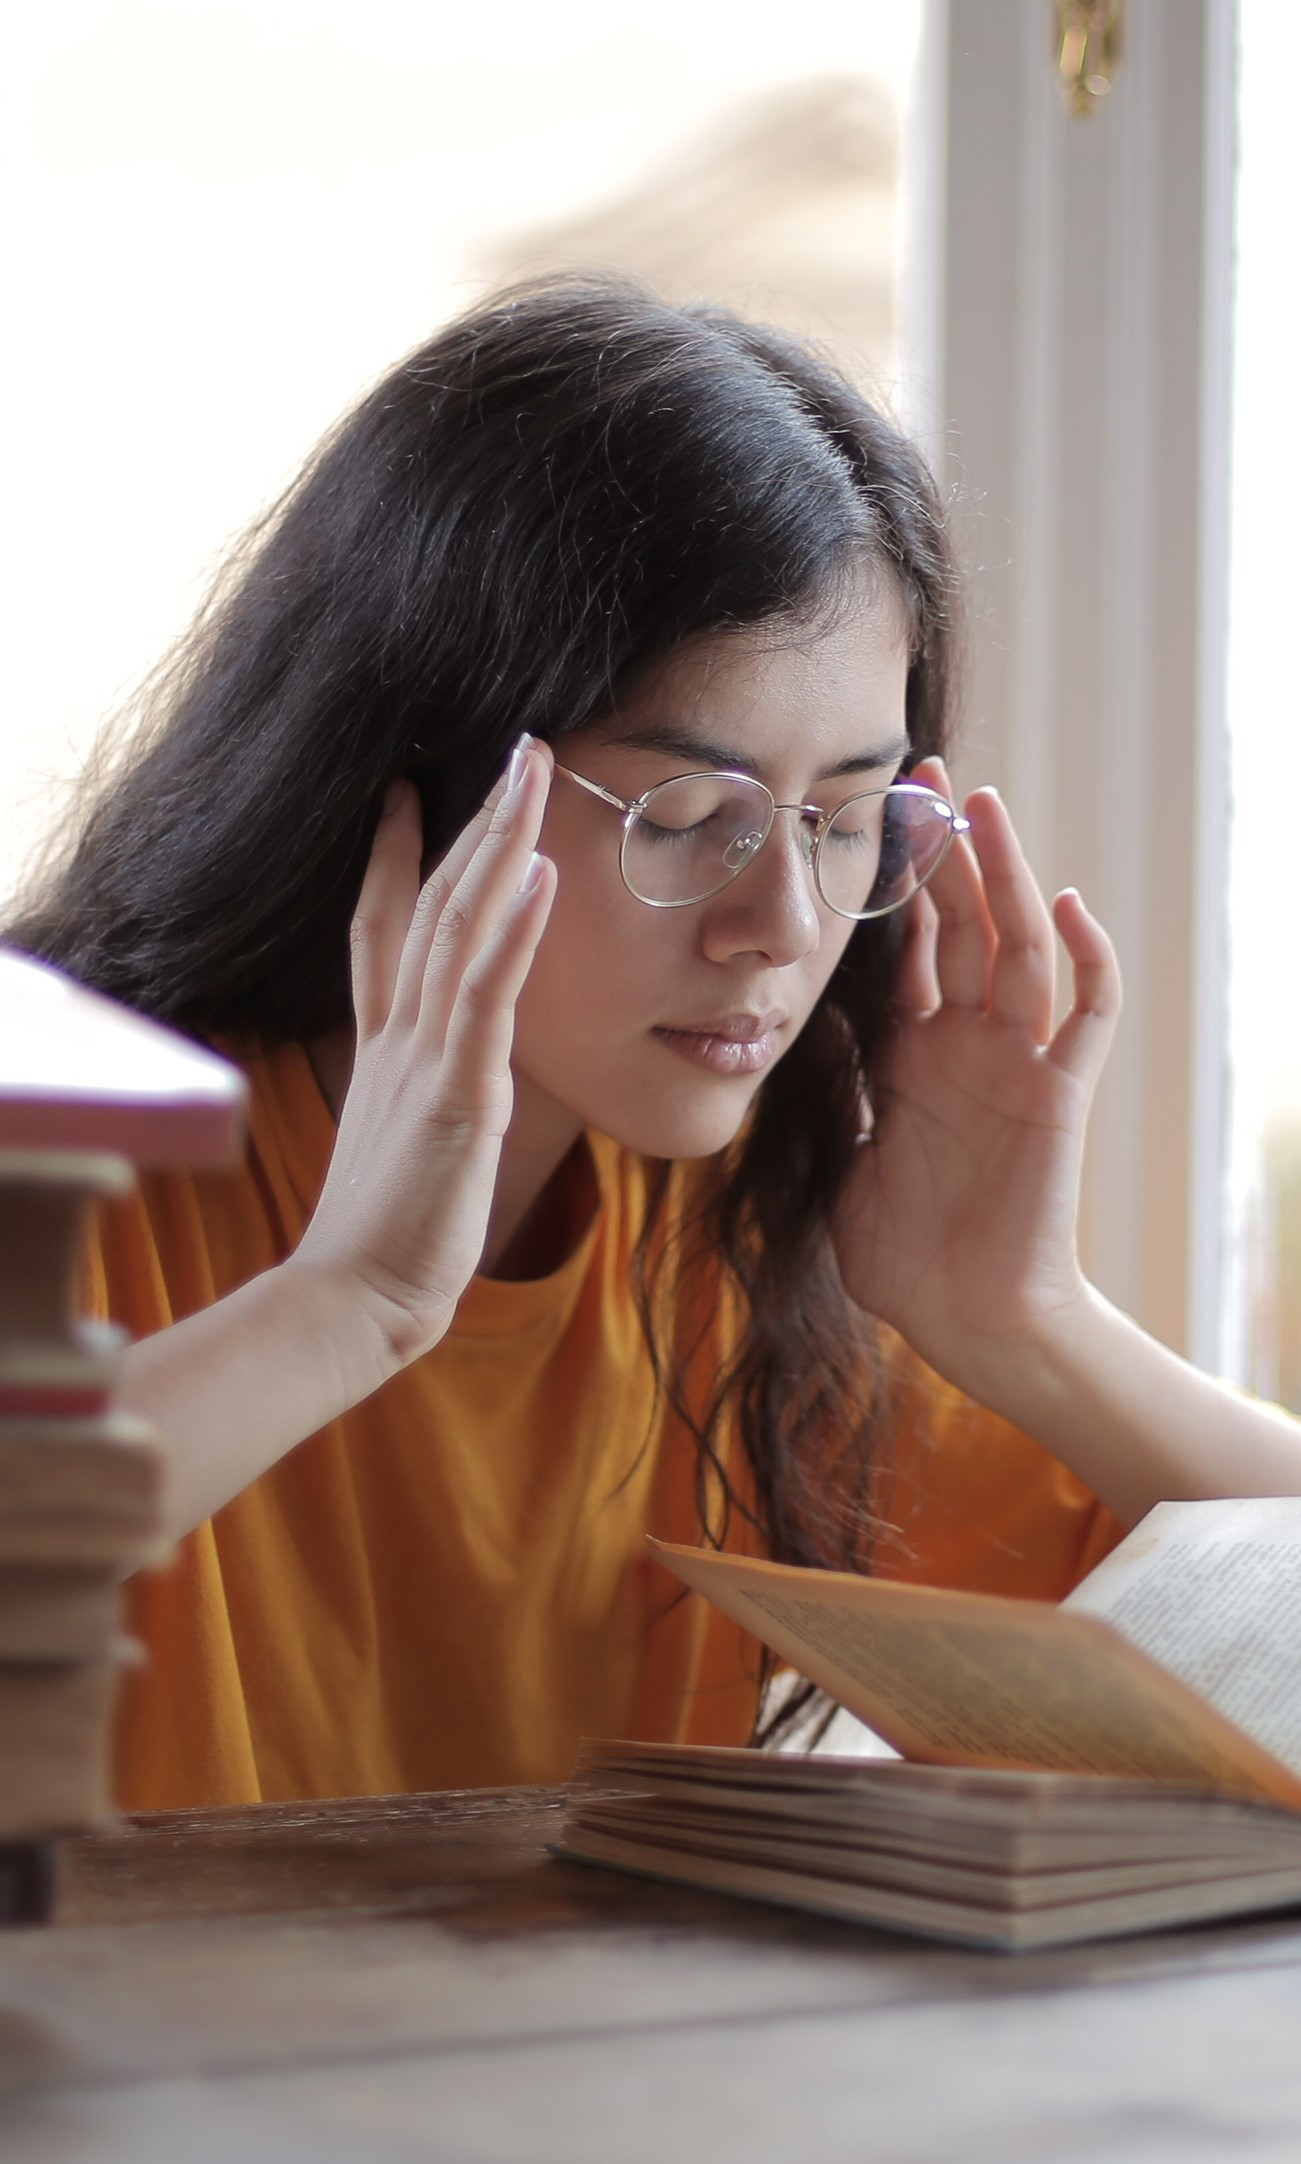 young-woman-wearing-glasses-surrounded-by-books-with-eyes-closed-and-hands-on-her-temples-appearing-to-have-a-headache